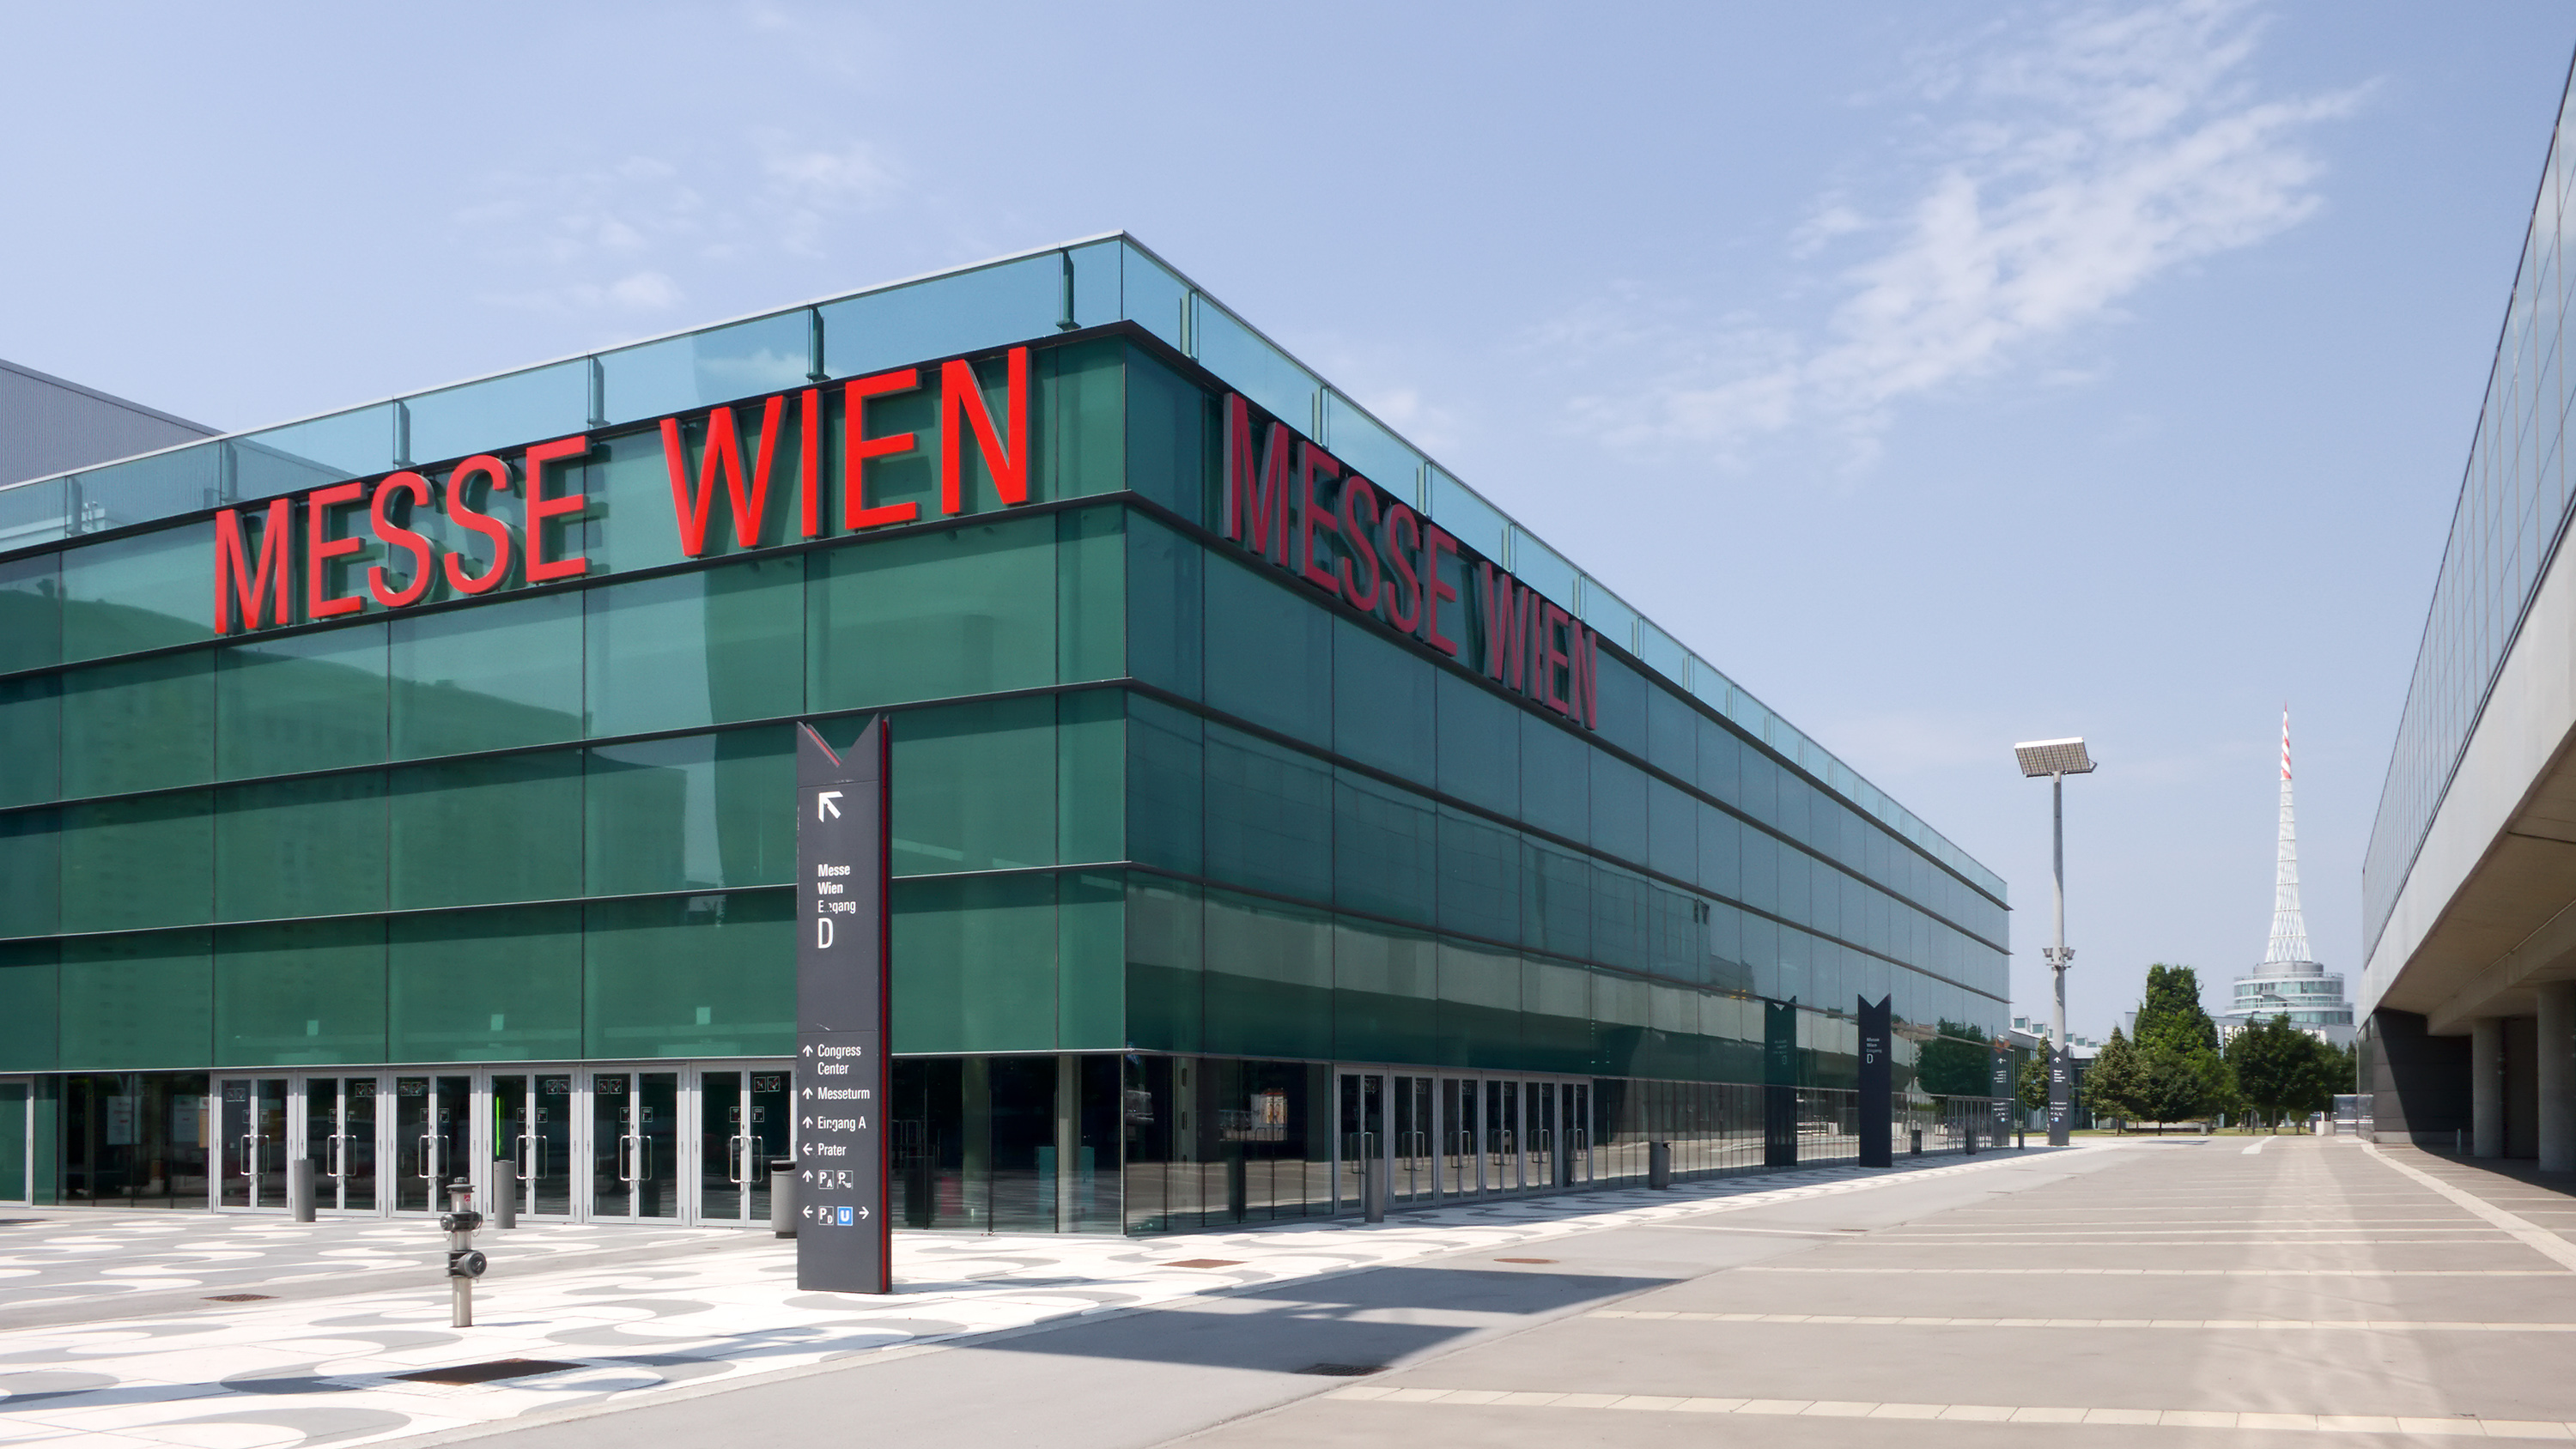 Messe Wien Wikipedia